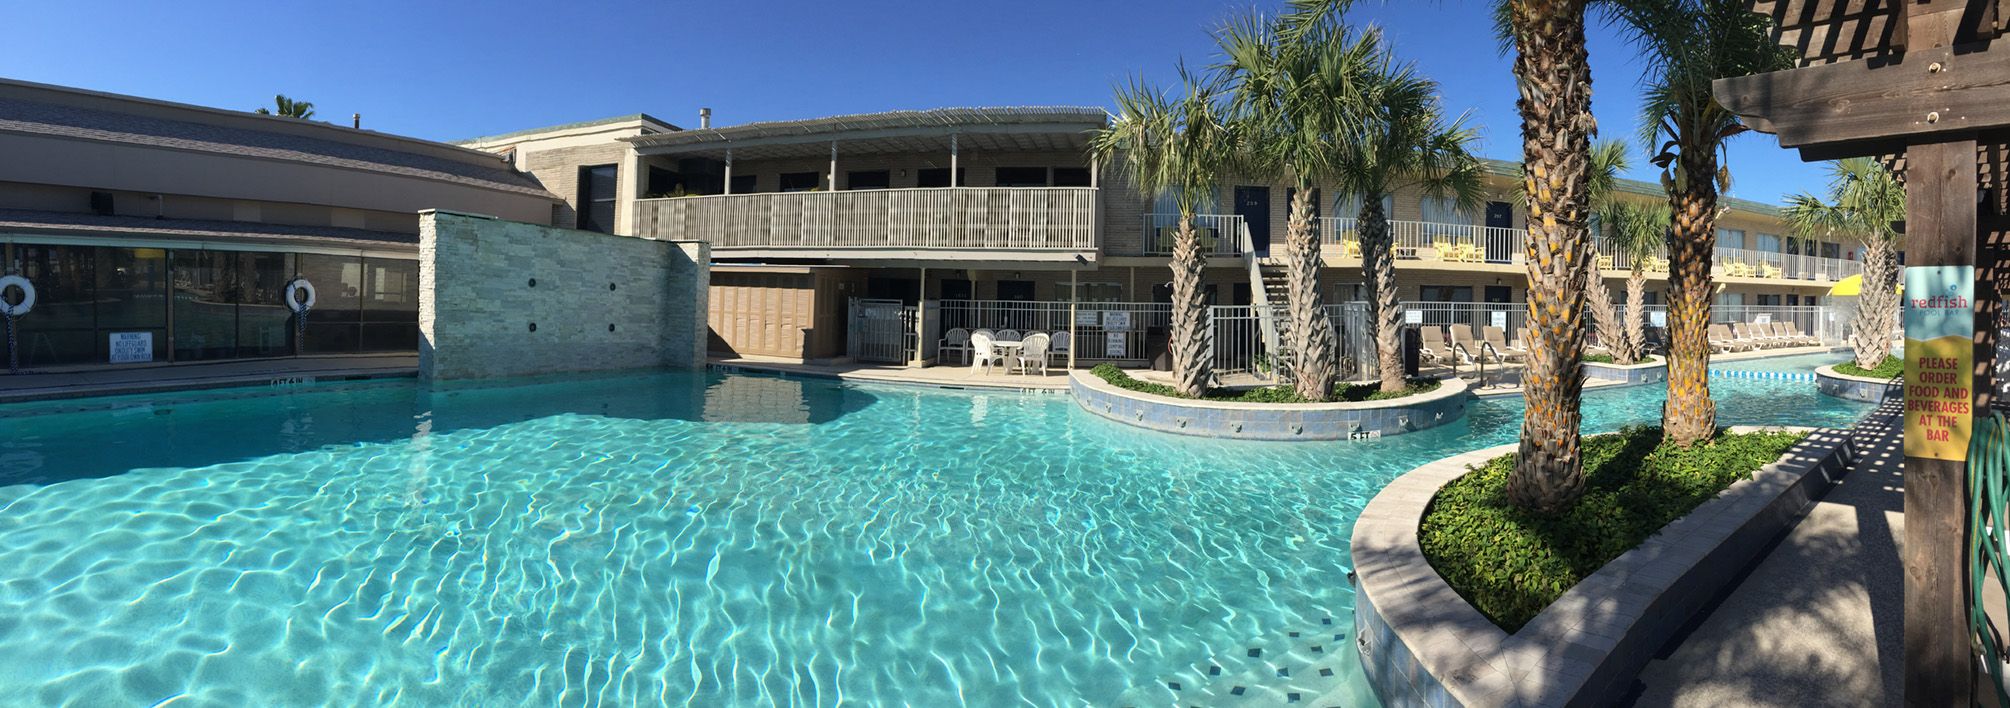 Seaside Inn Pool